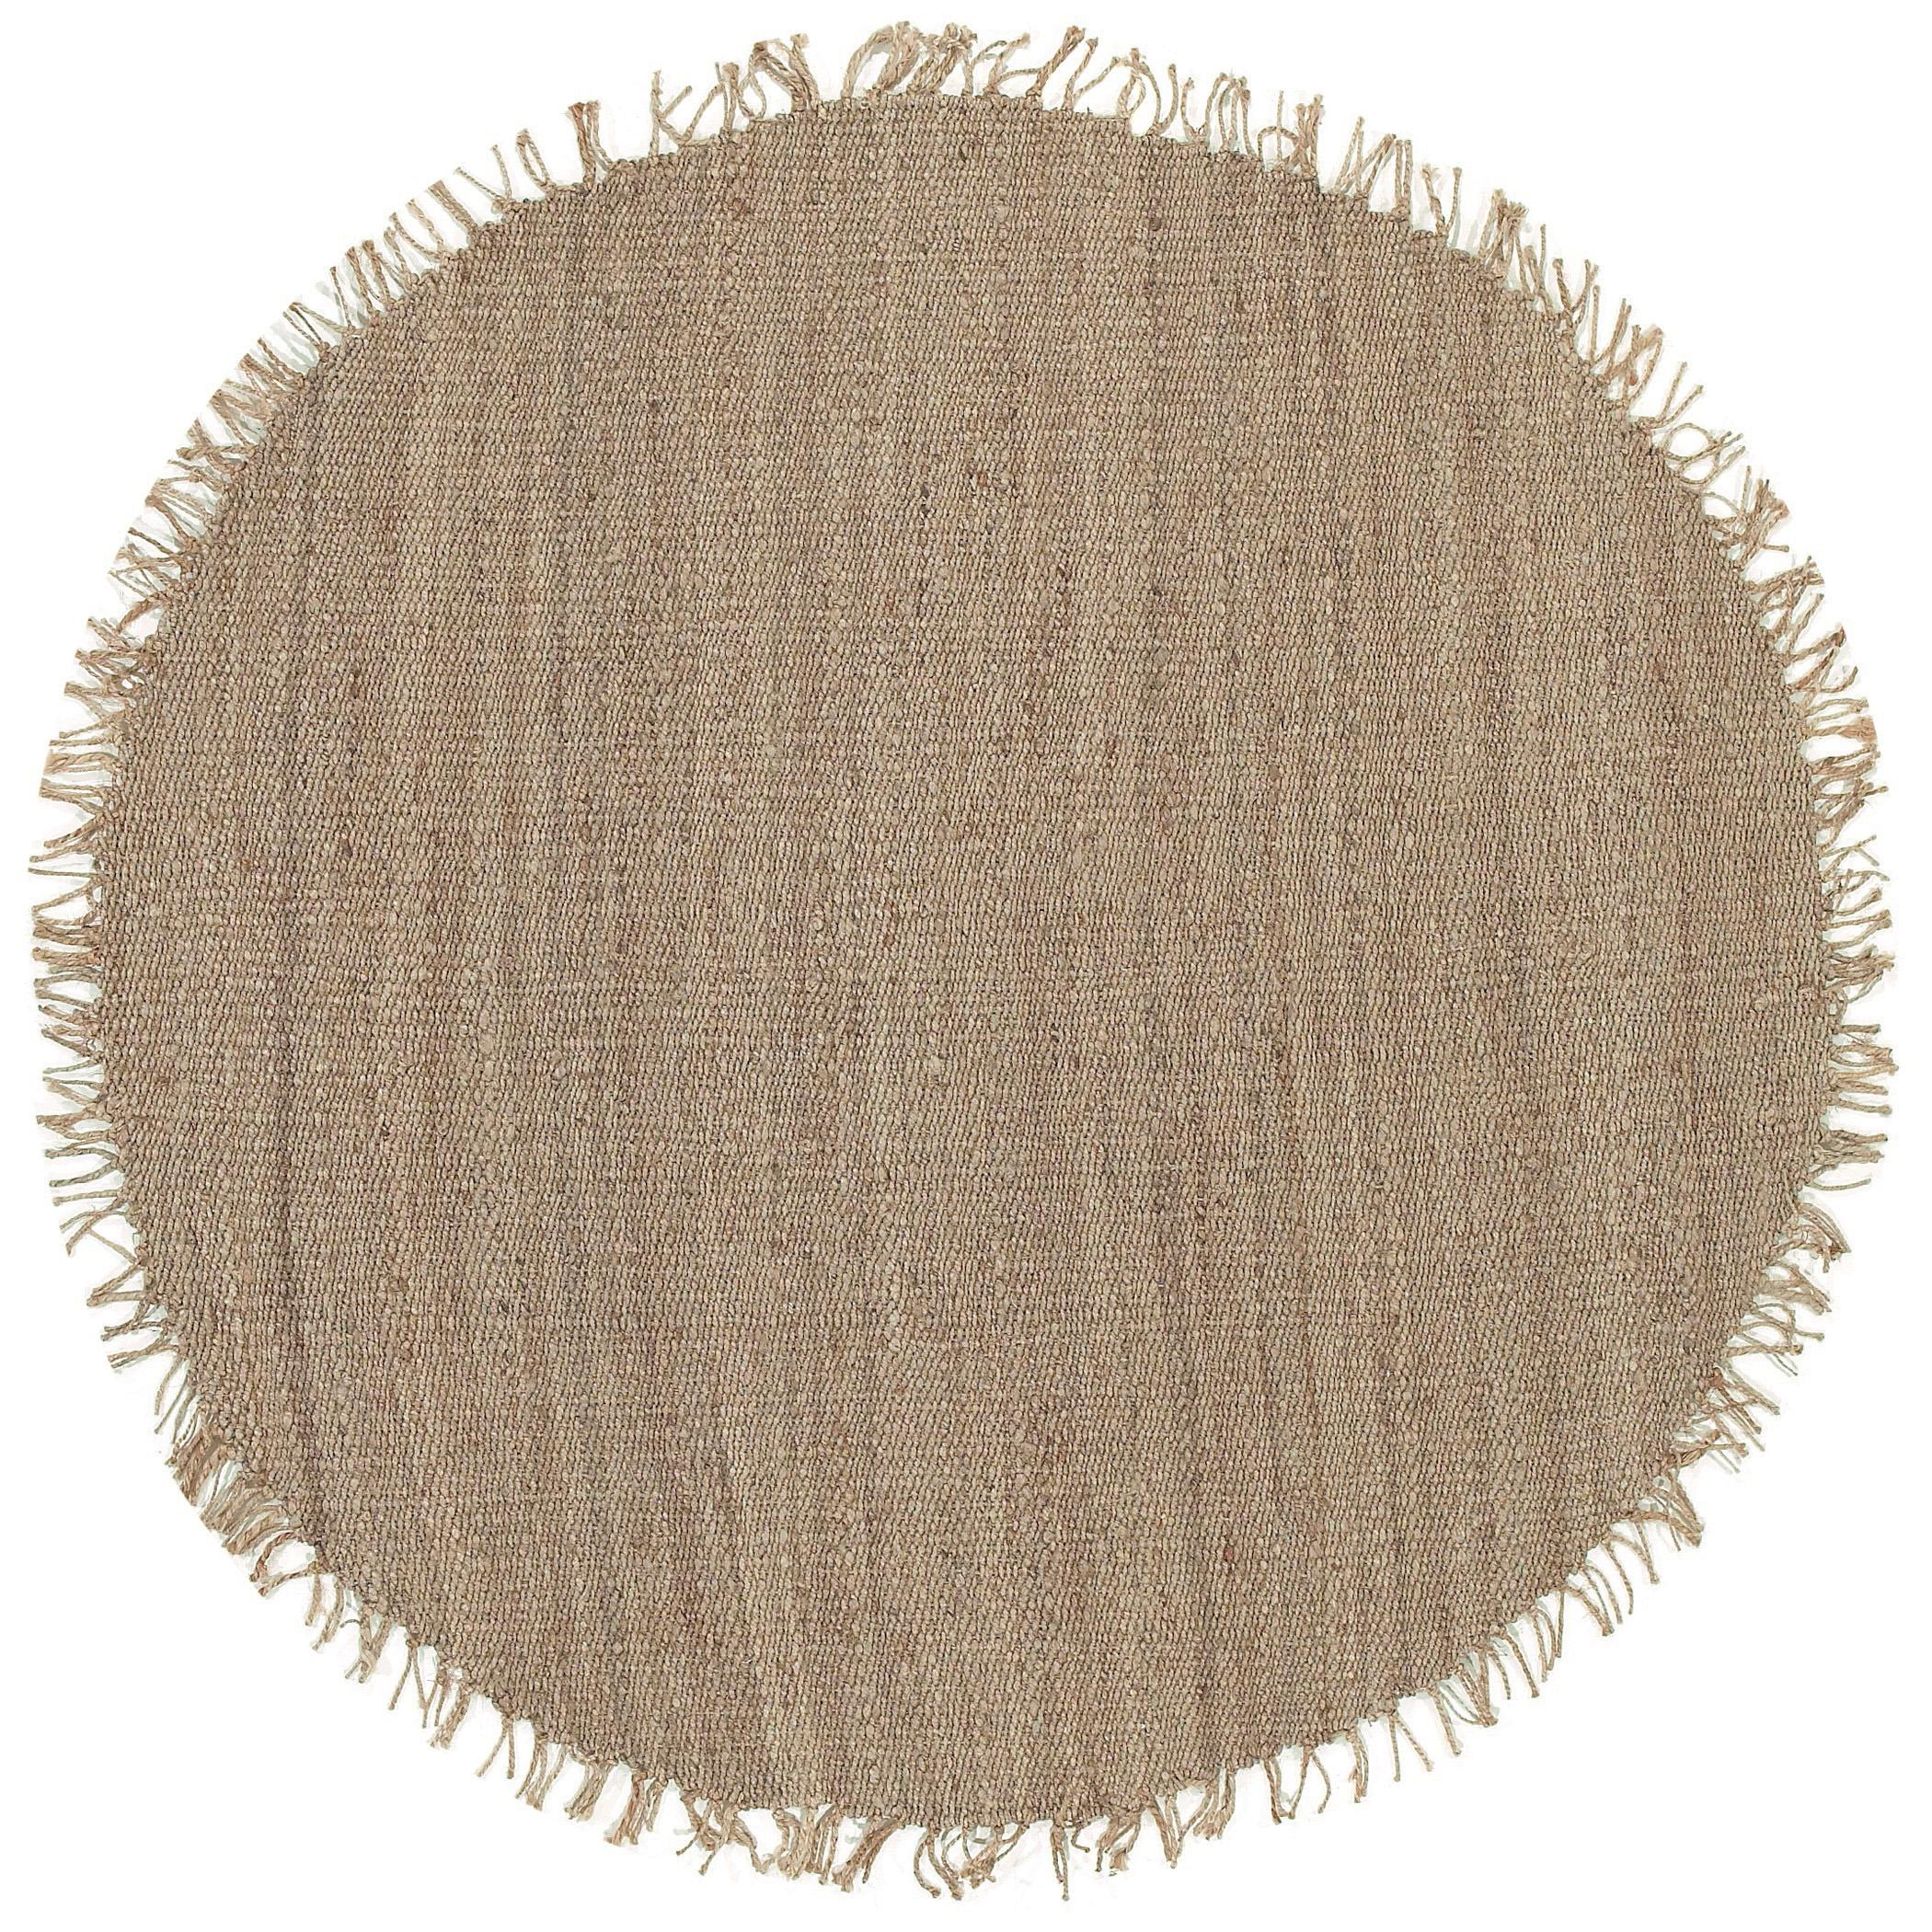 Surya Jute Natural 6' Round - Item Number: J-6RD